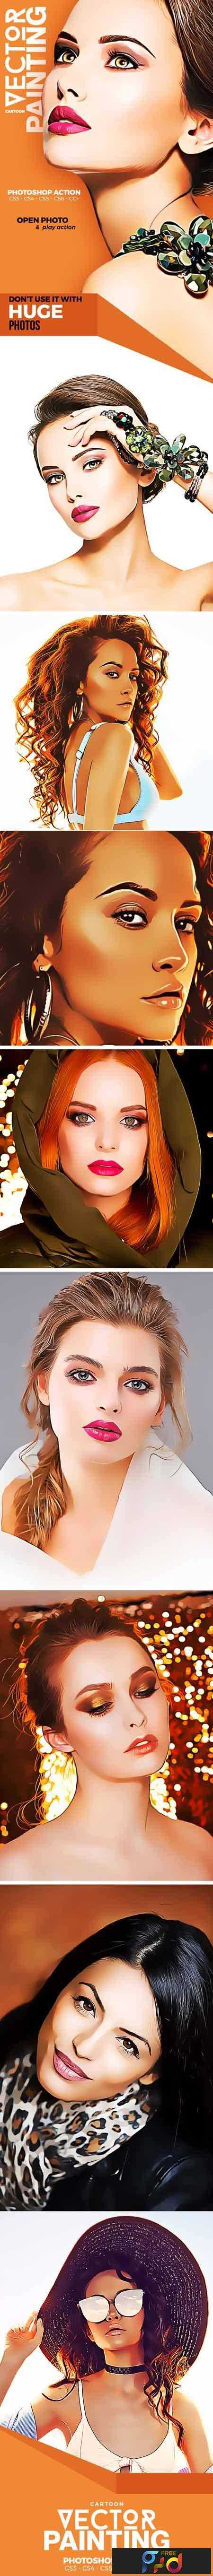 1805019 Cartoon Vector Painting Photoshop Action 21616686 1